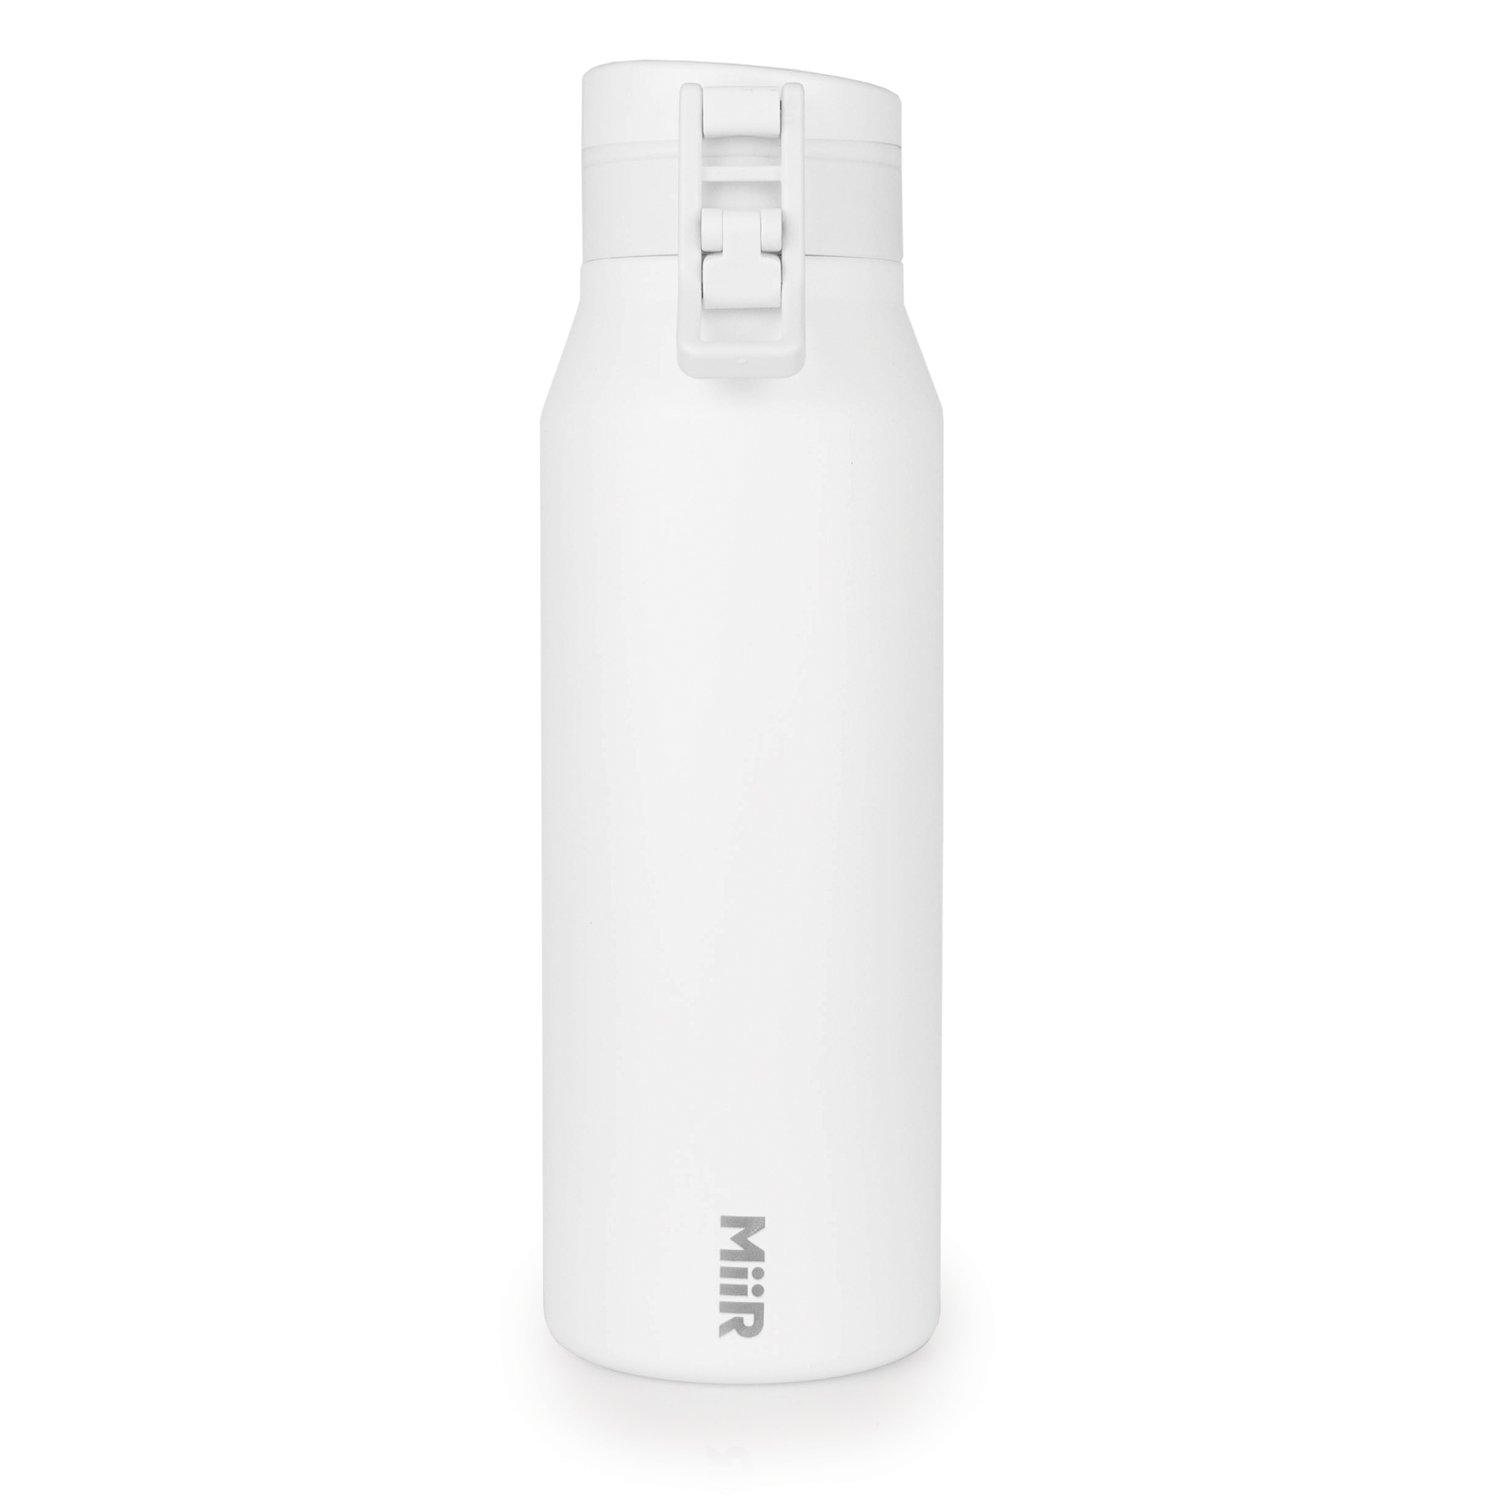 MiiR 32oz Insulated Howler For Beer, Cider, Water or Coffee